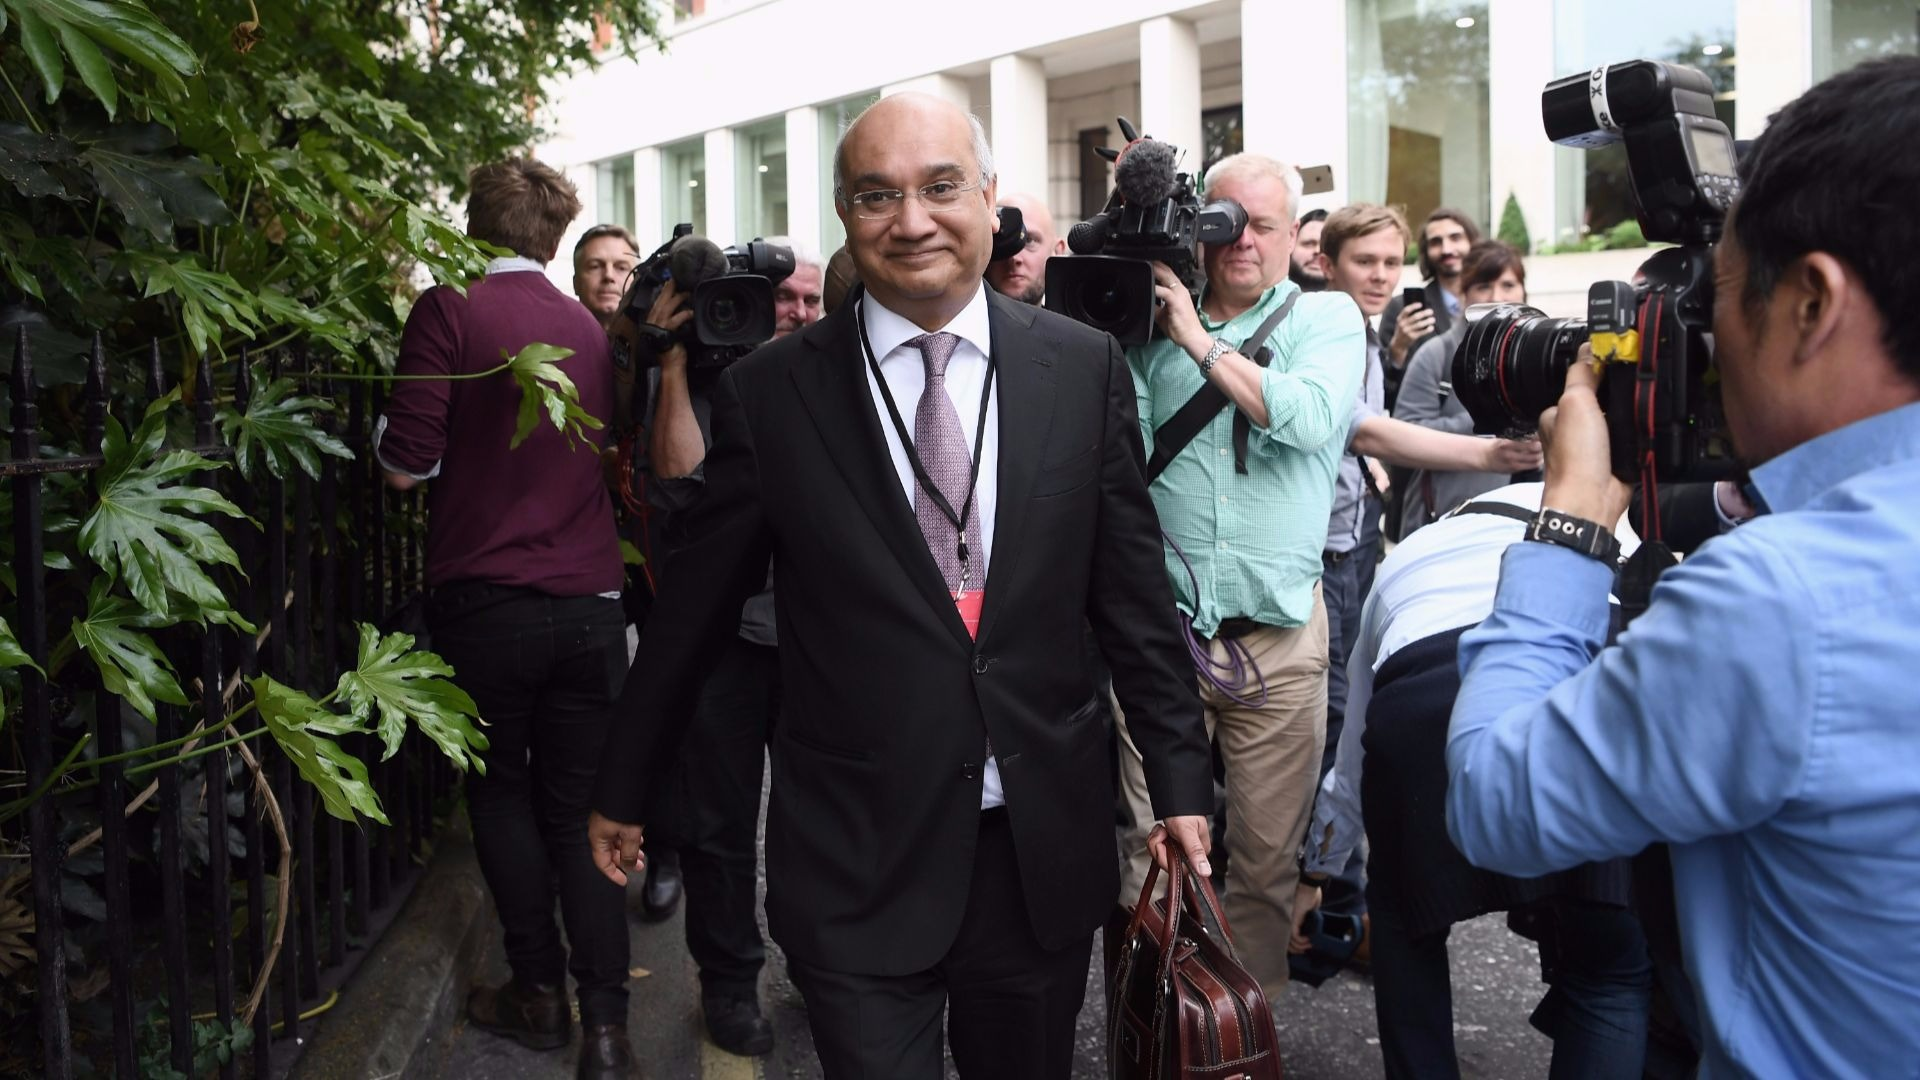 MP Keith Vaz walking down the street.